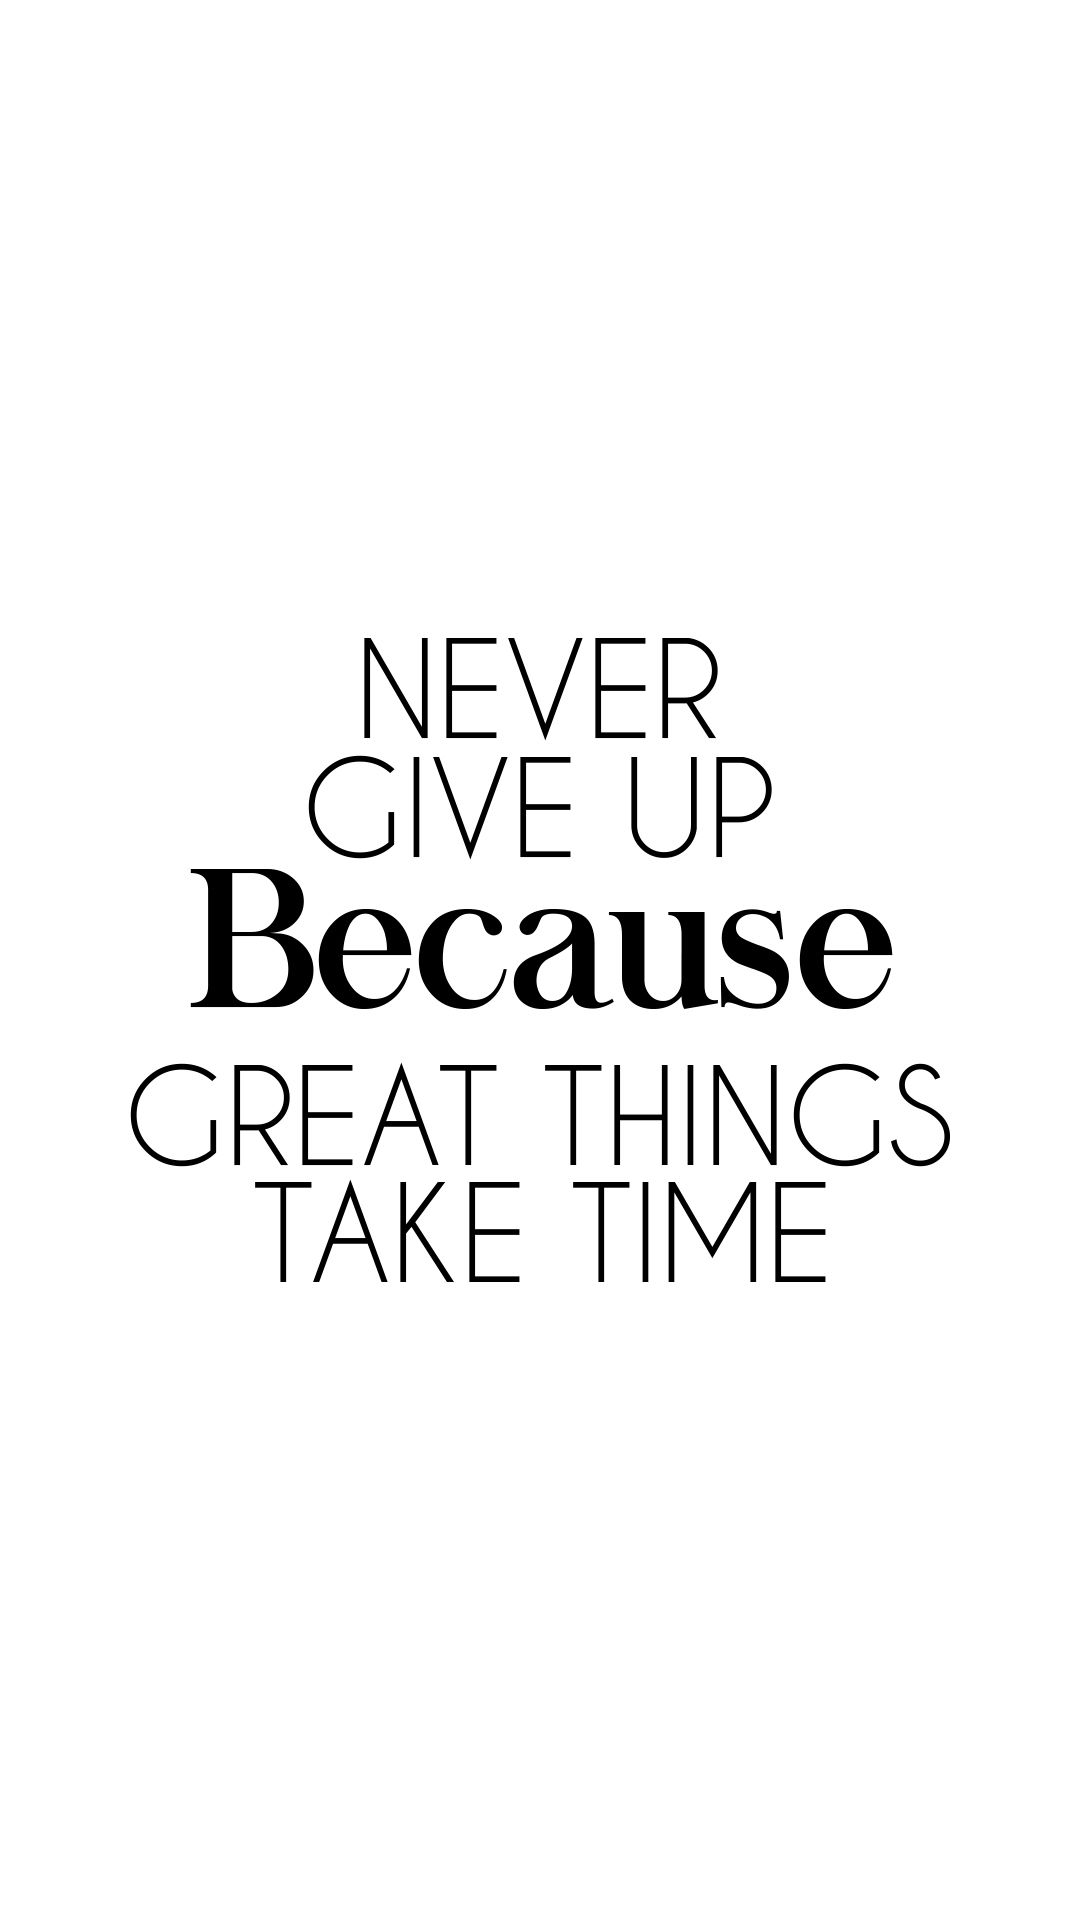 Never Give Up Because Great Things Take Time Motivational Quote Giving Up Quotes Never Give Up Quotes Inspirational Quotes Motivation